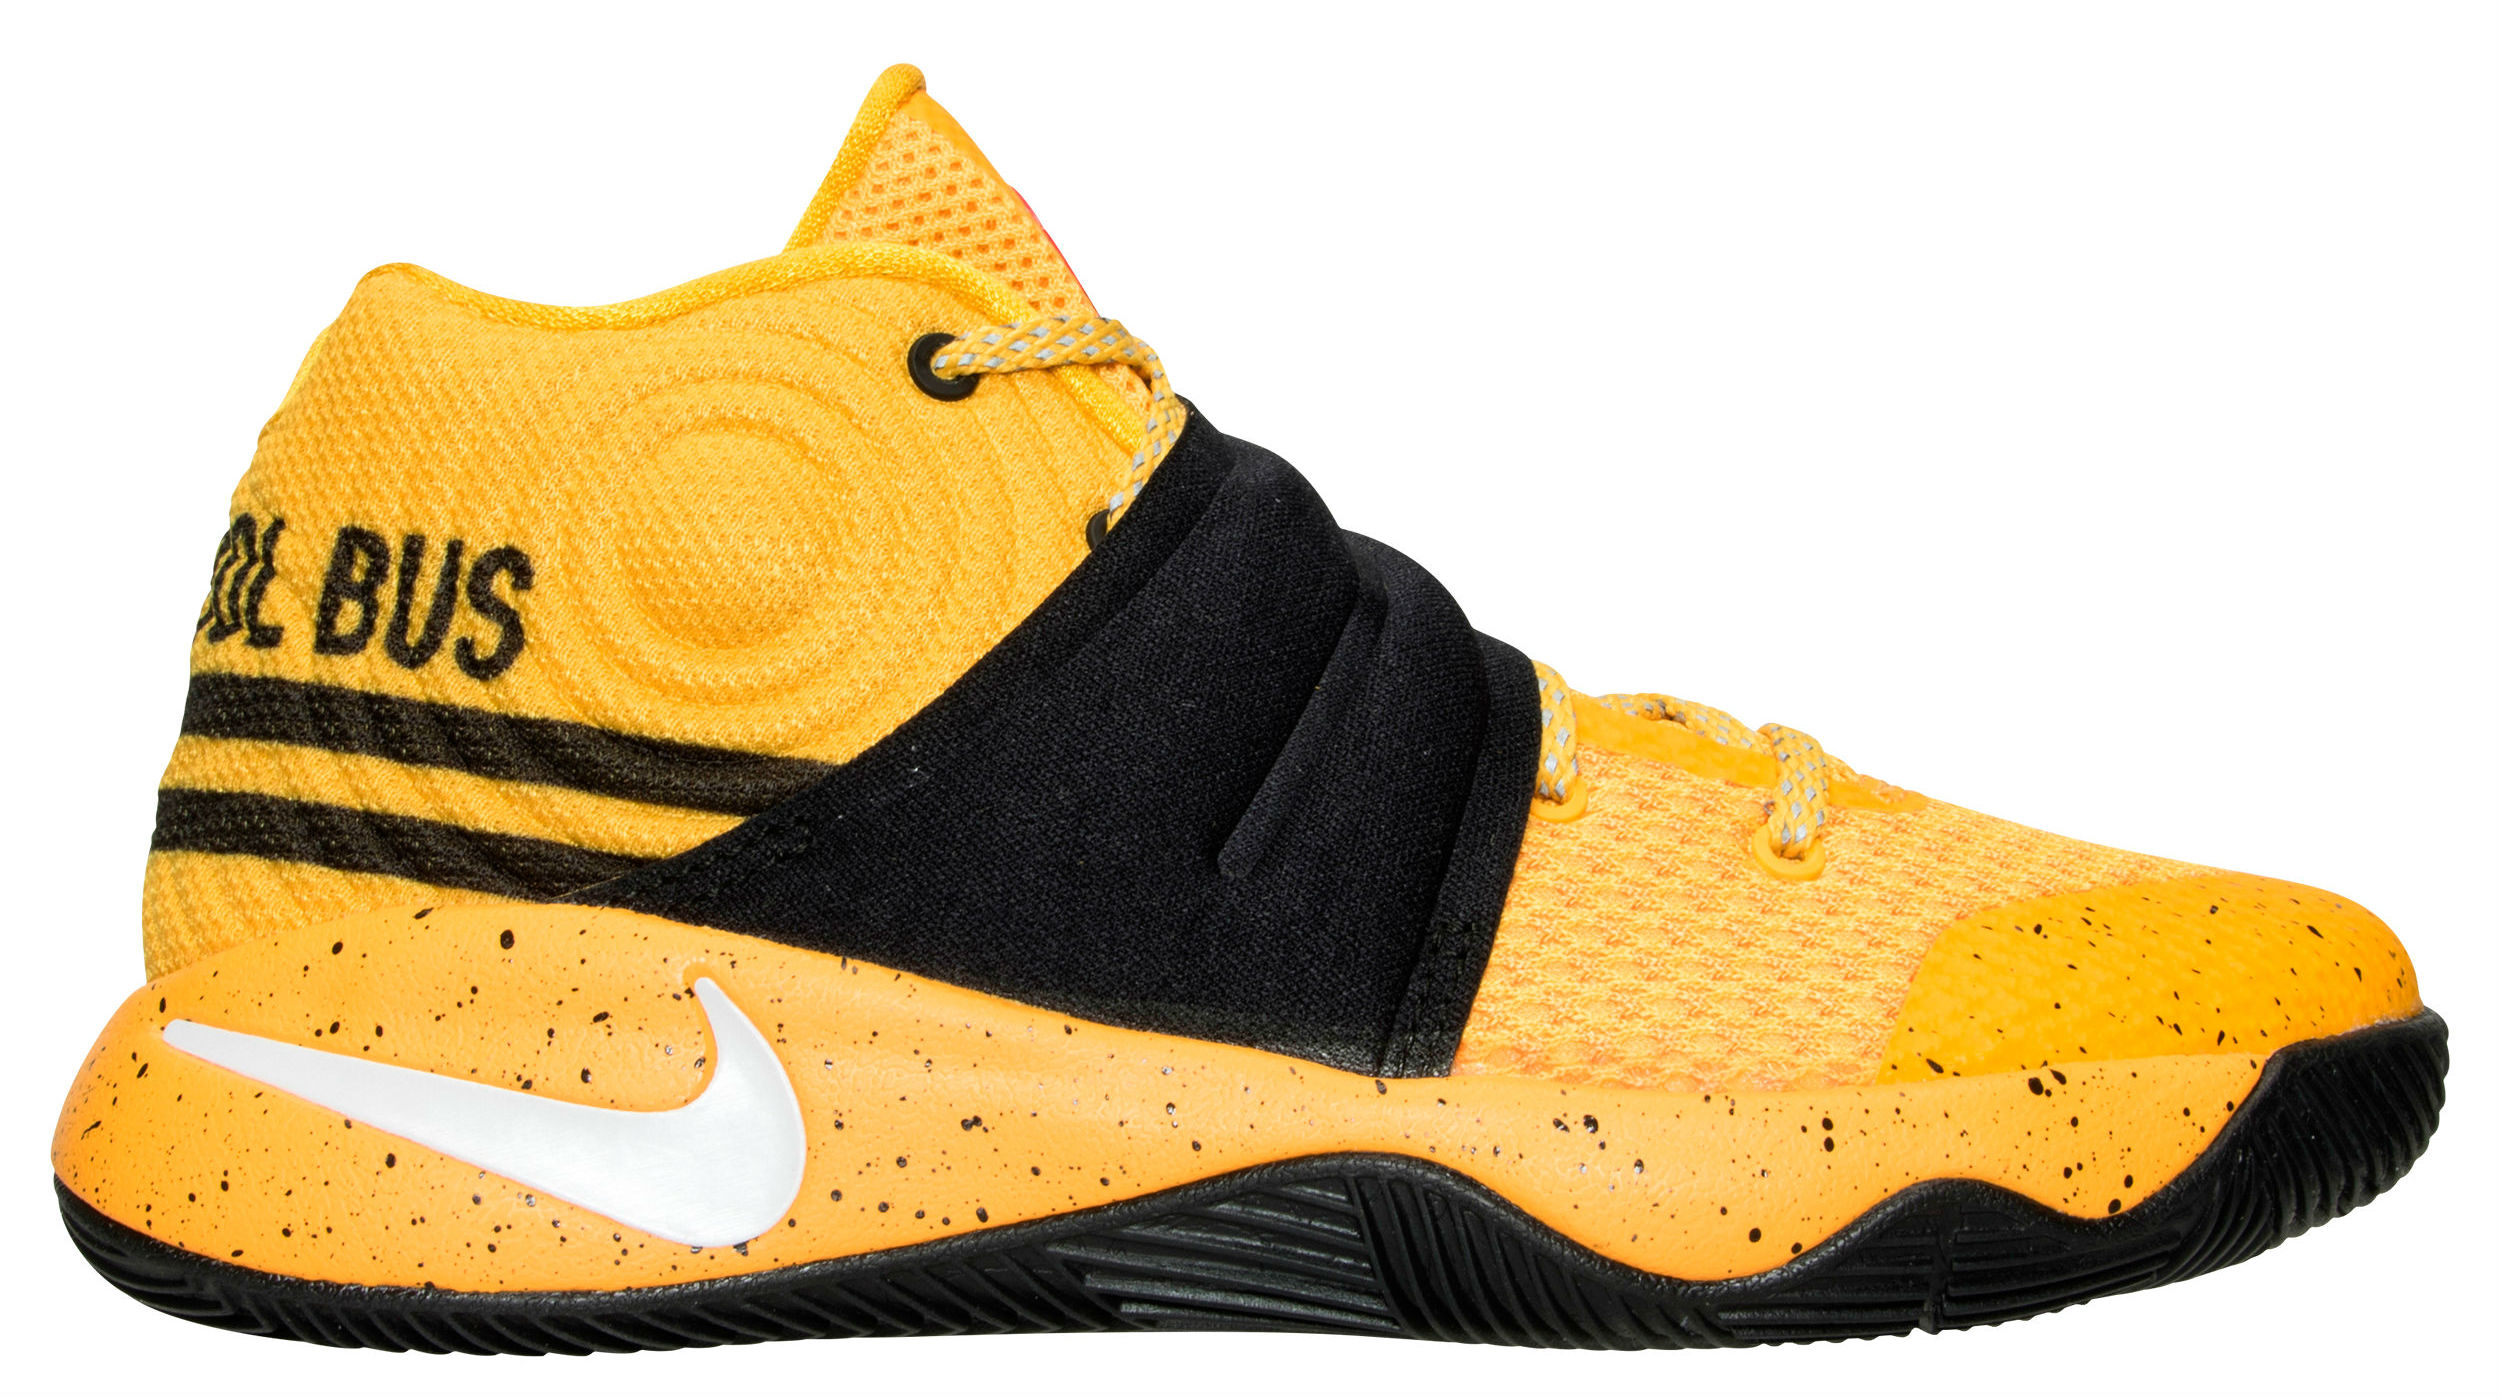 best sneakers 0937f 69e89 australia nike kyrie 2 black gold finals da309 e6d08  top quality school  bus kyrie 2 release date side 827280 700 be166 59b57